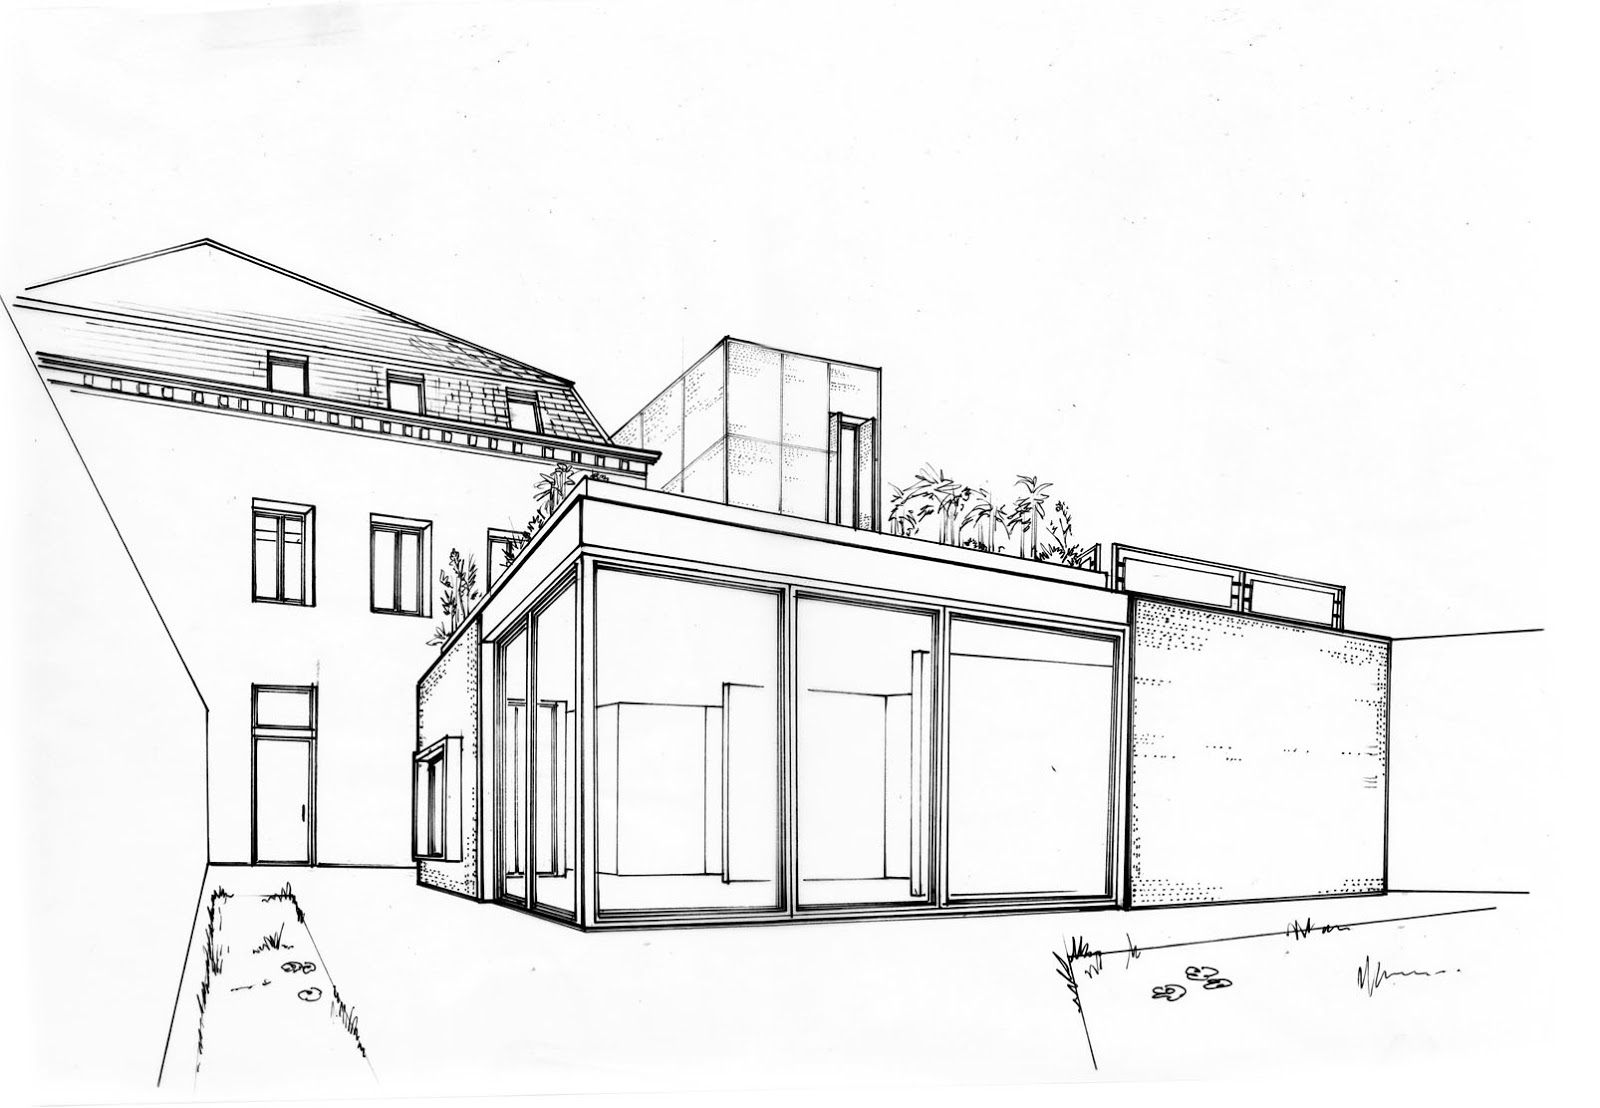 The B&W animation Stories: Architecture drawing for Atelier-24